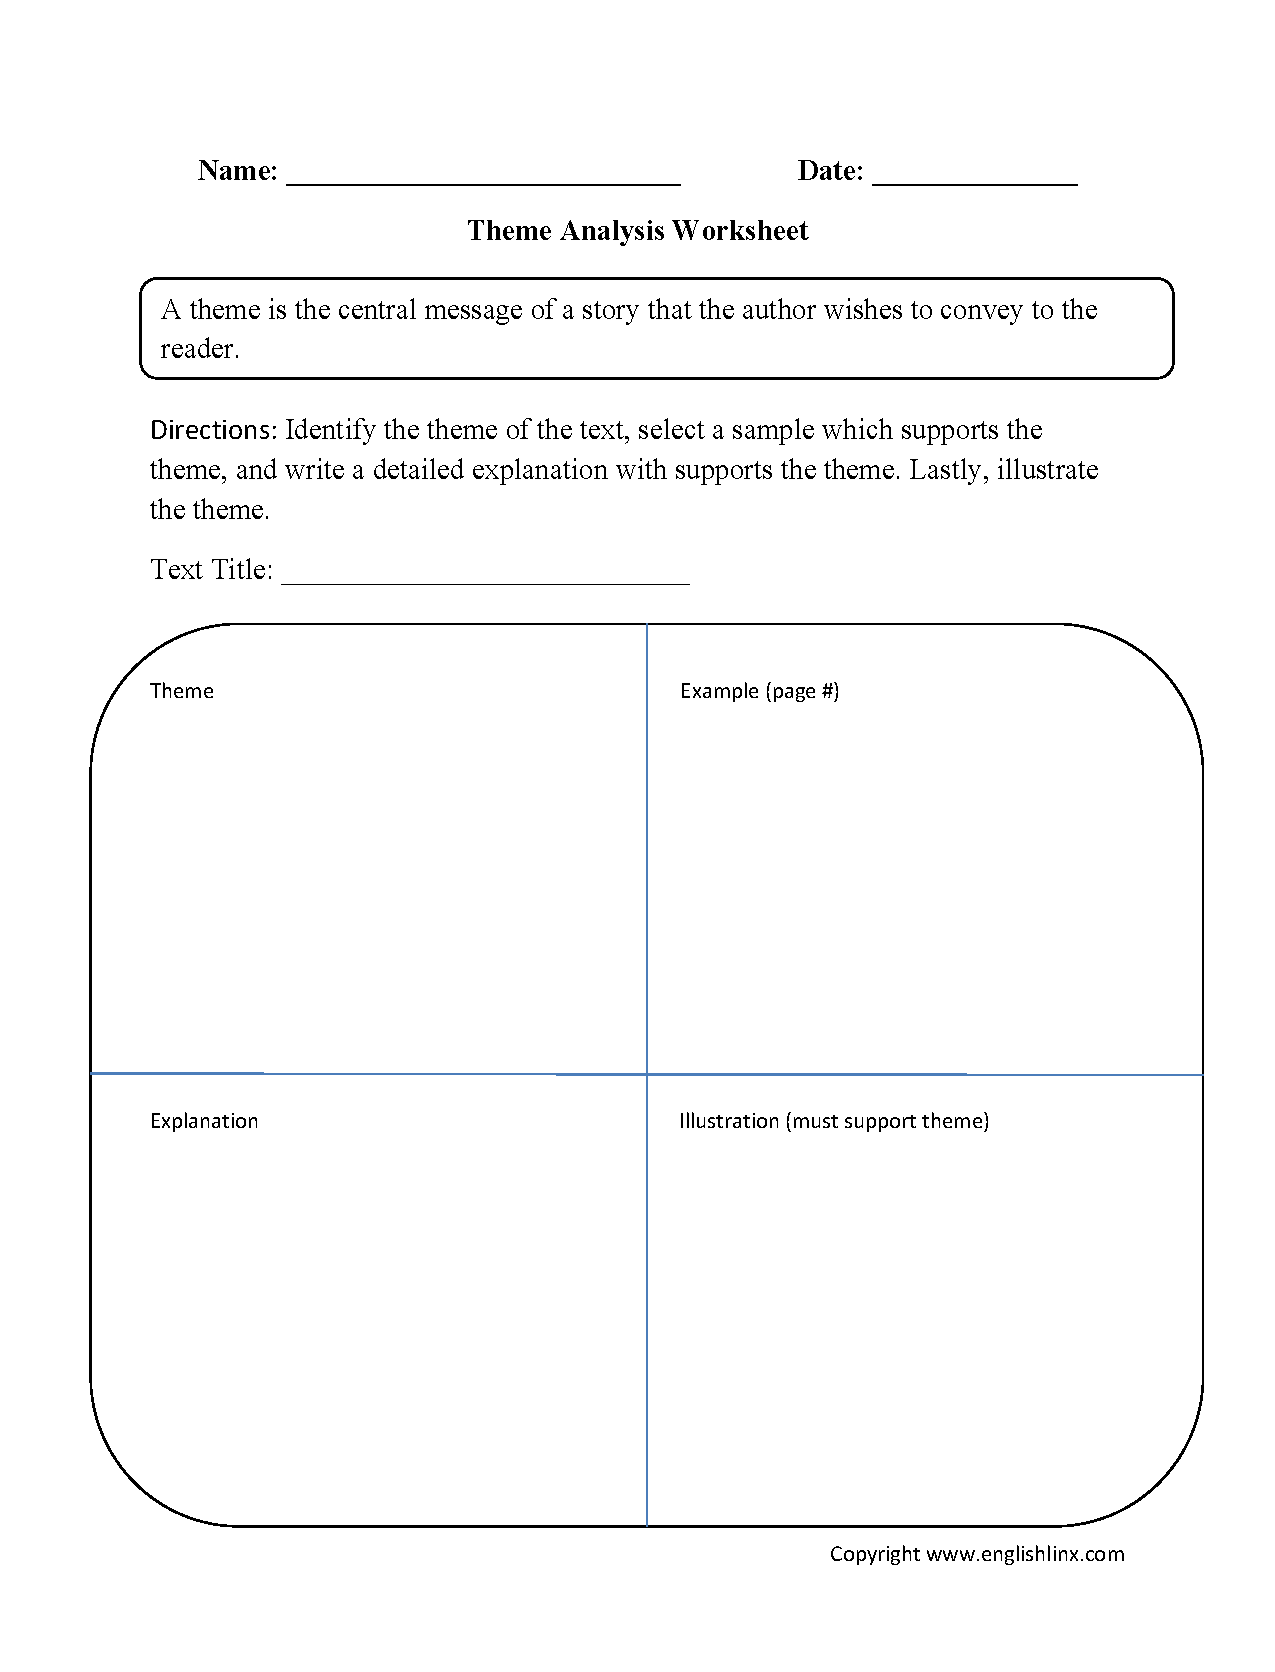 Theme Analysis Worksheet